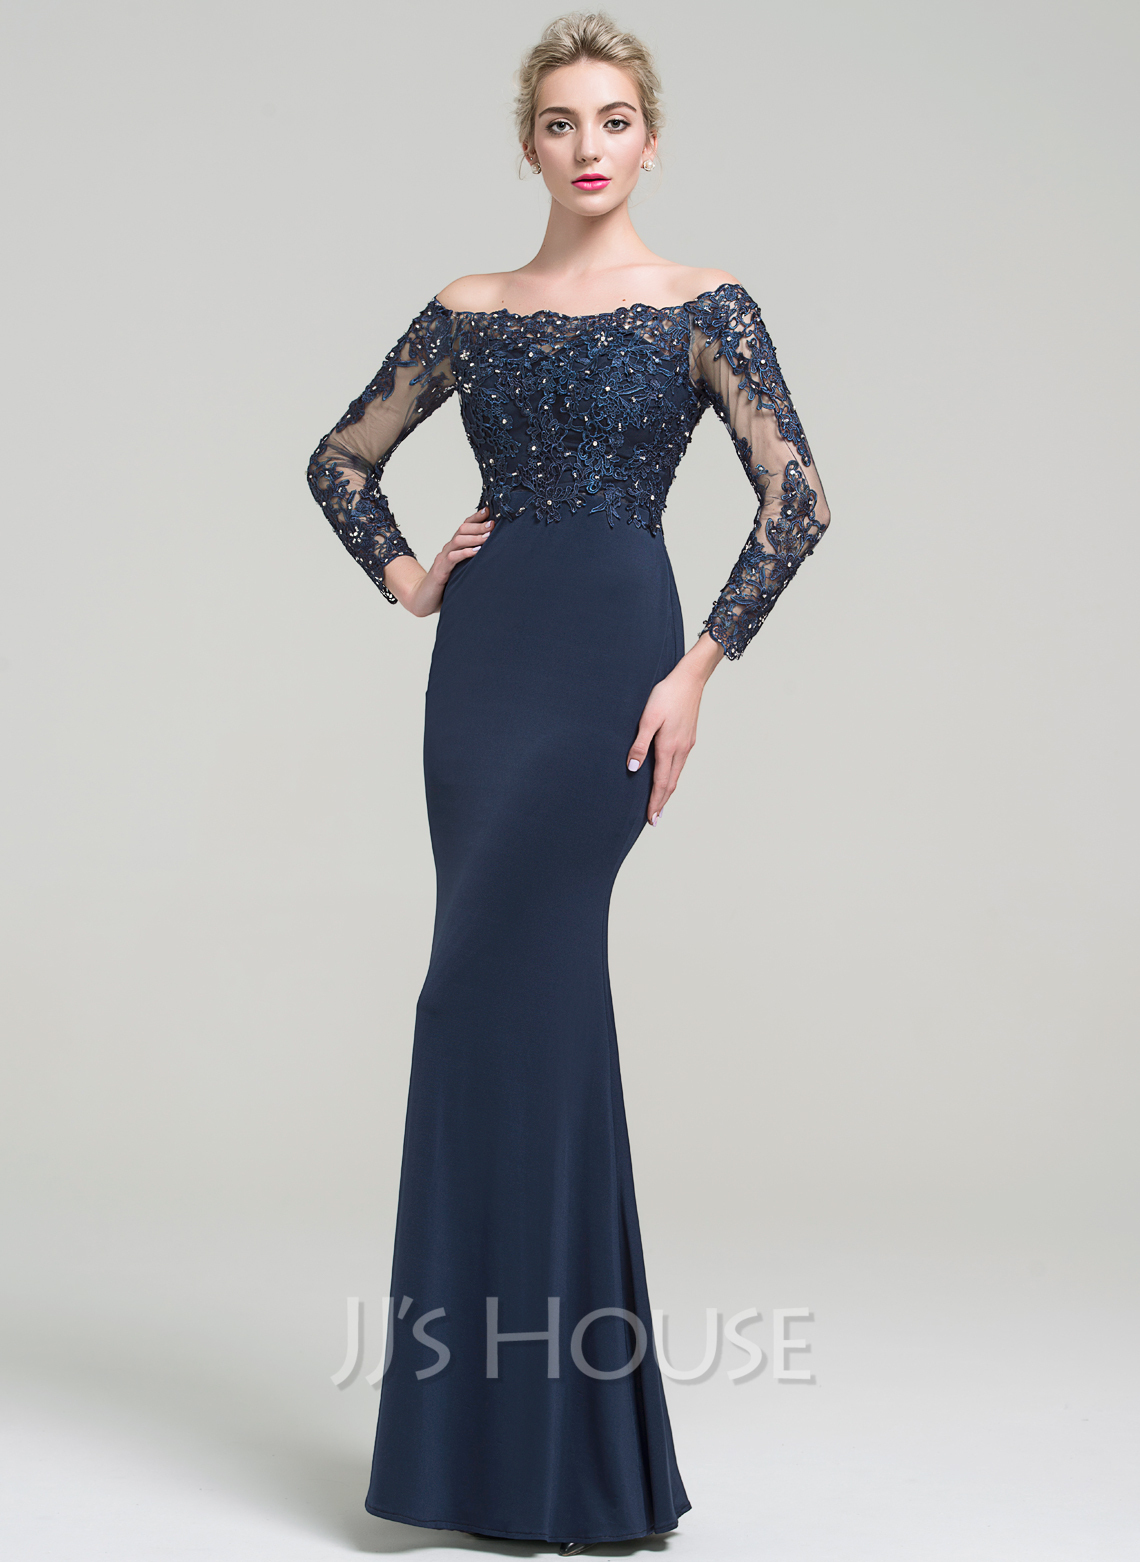 Trumpet/Mermaid Off-the-Shoulder Floor-Length Jersey Prom Dresses With Beading Sequins